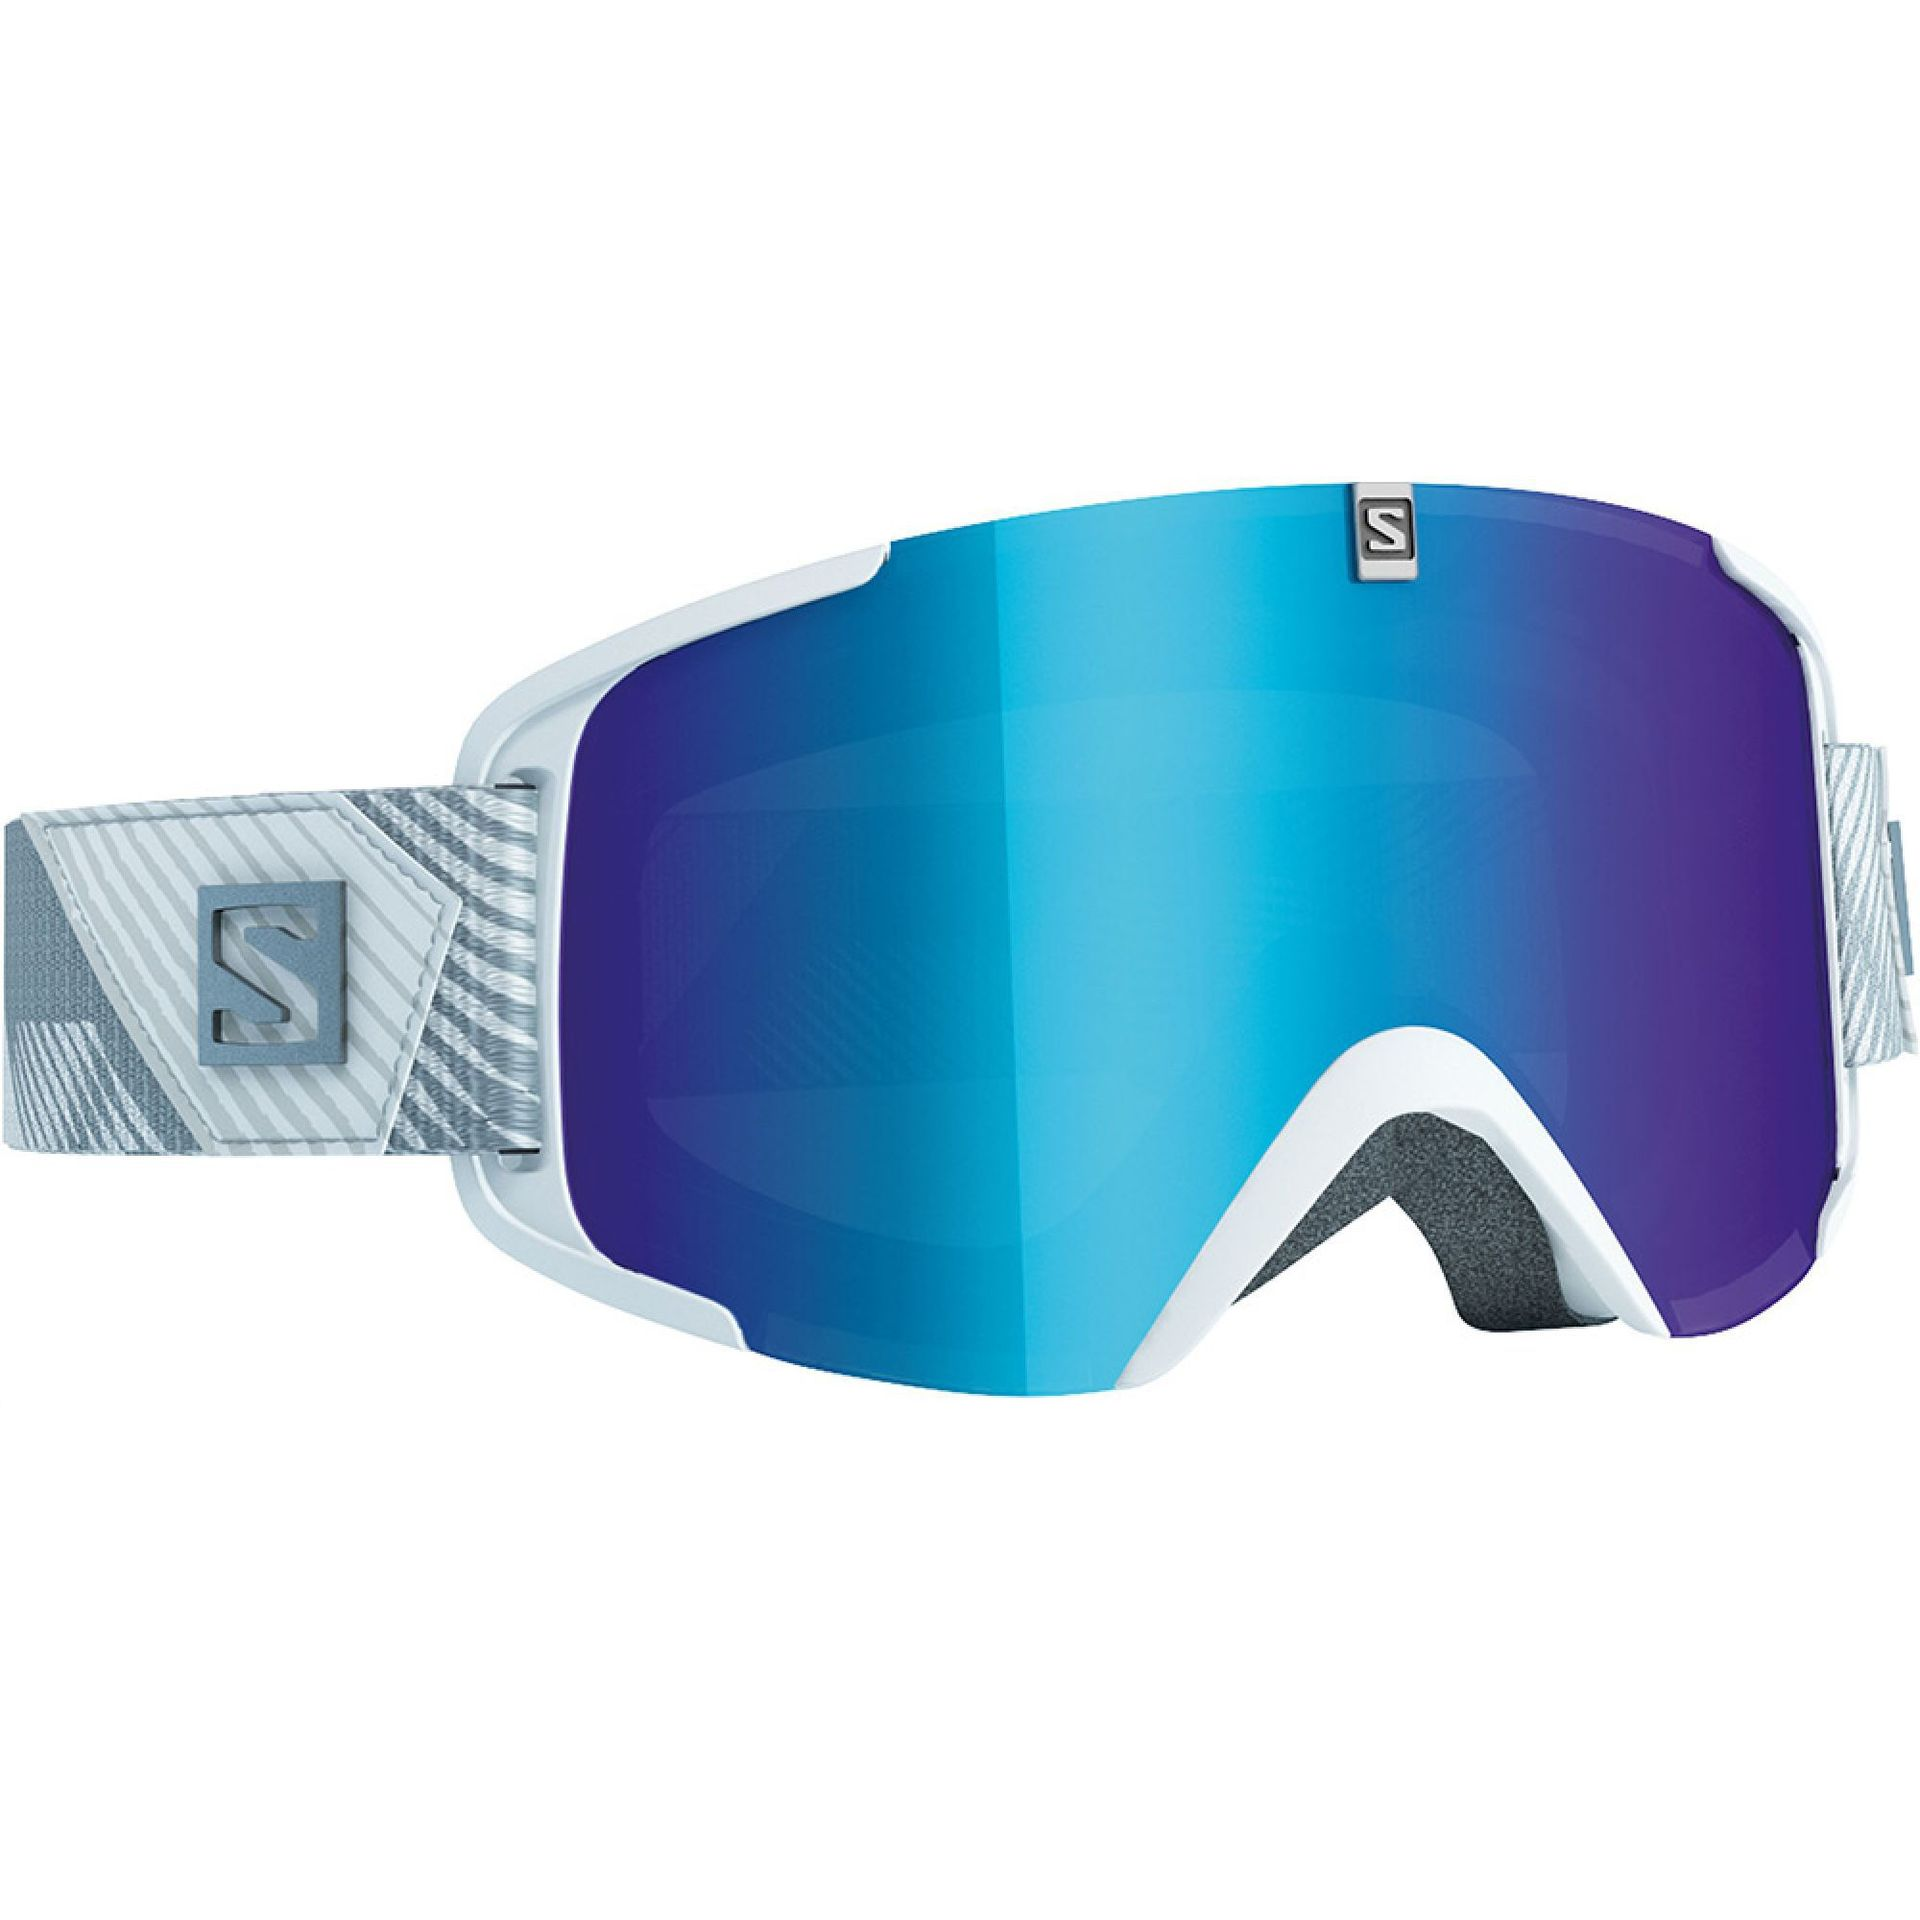 GOGLE SALOMON X VIEW EXTRA WHITE|SOLAR BLUE 1